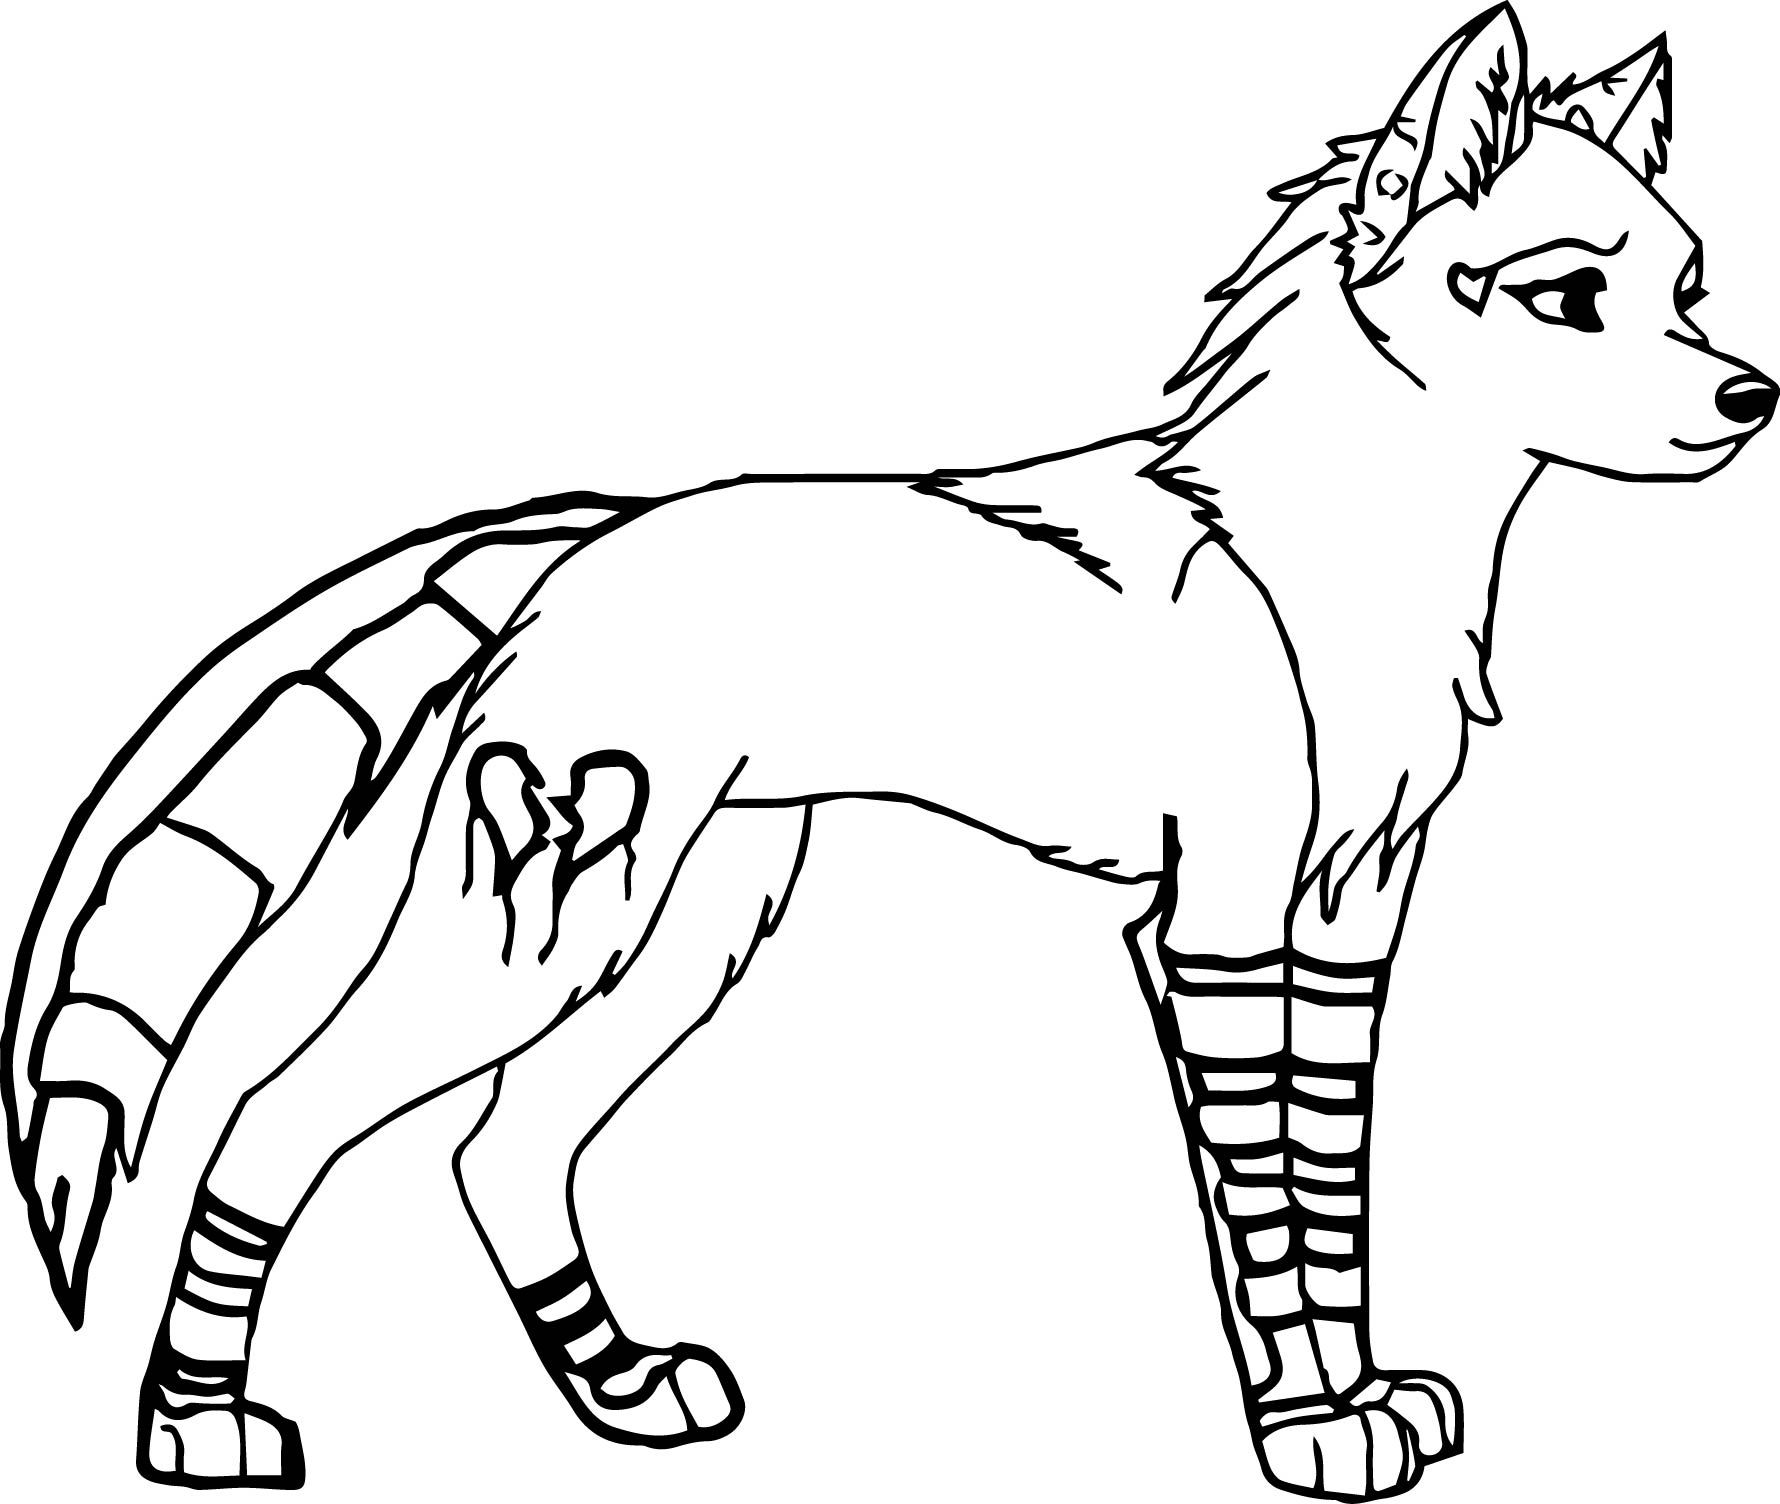 wolf coloring sheets female wolf coloring pages patterns wolfs minták coloring sheets wolf